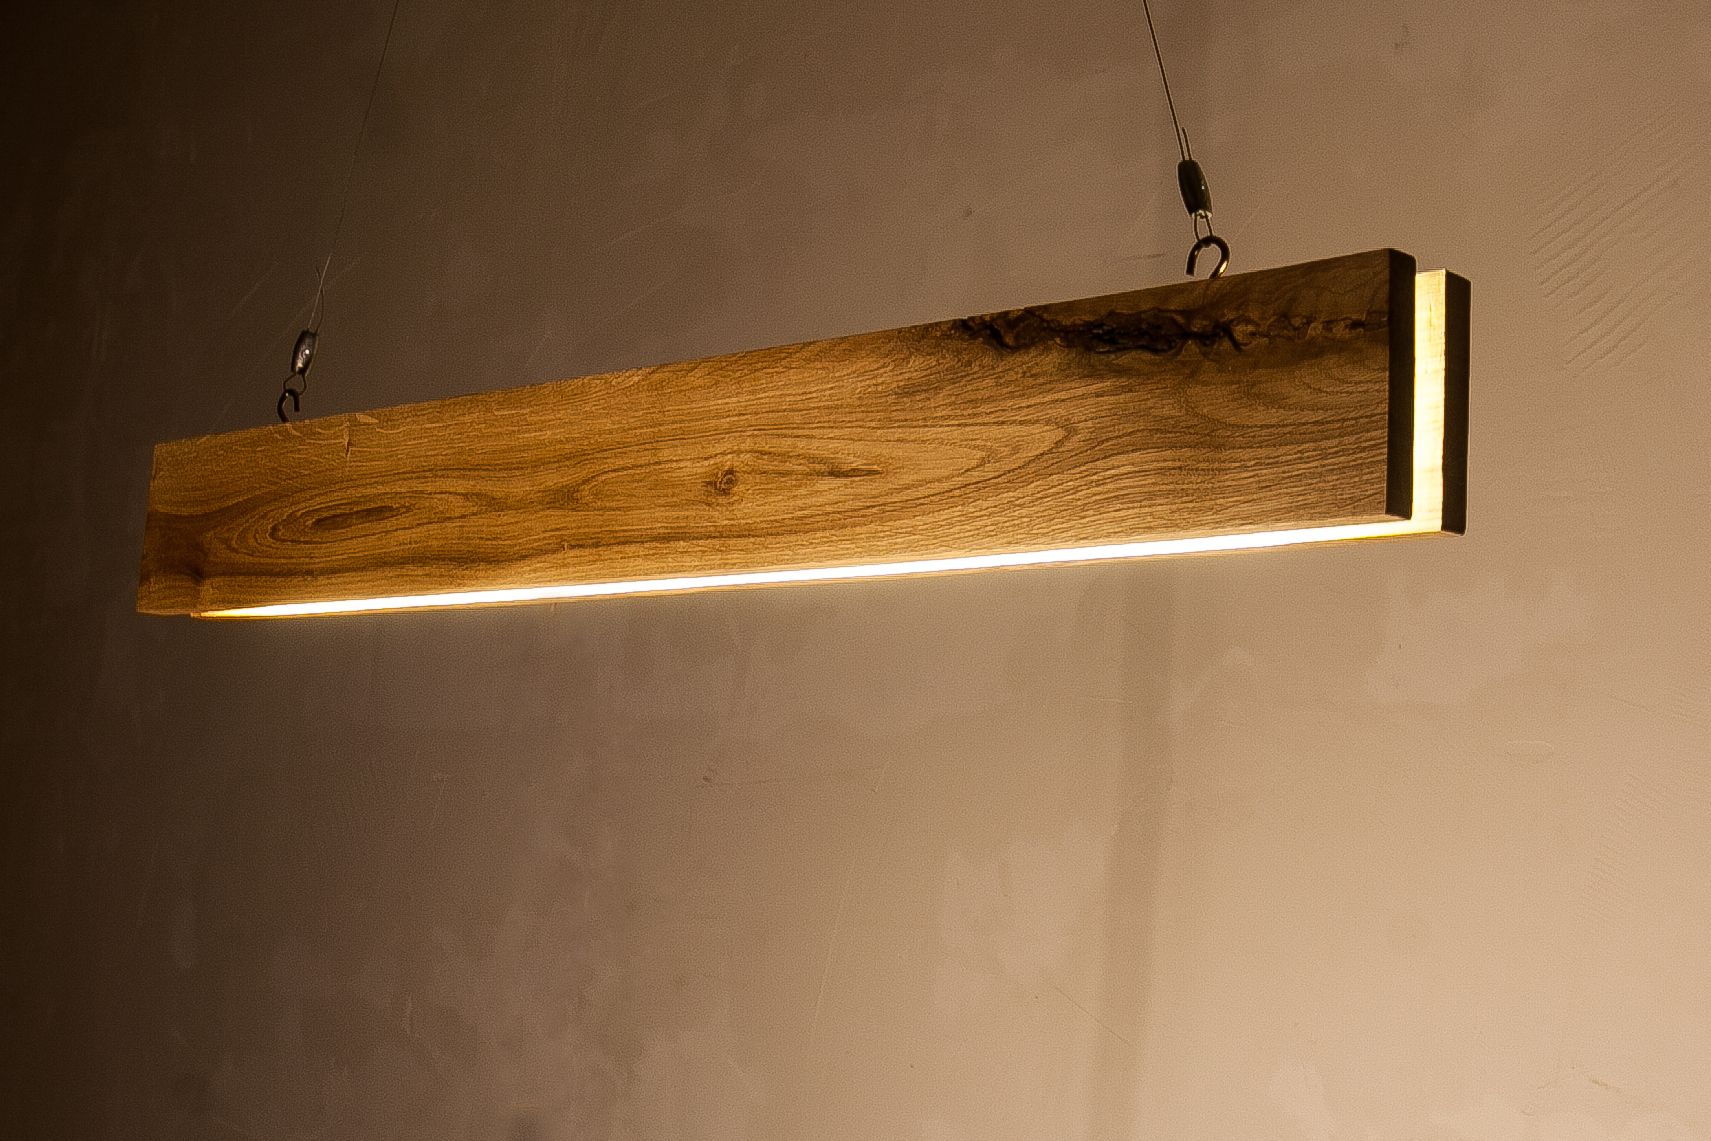 Pin by Bart de Koning on Verlichting | Pinterest | Led strip, Solid ...